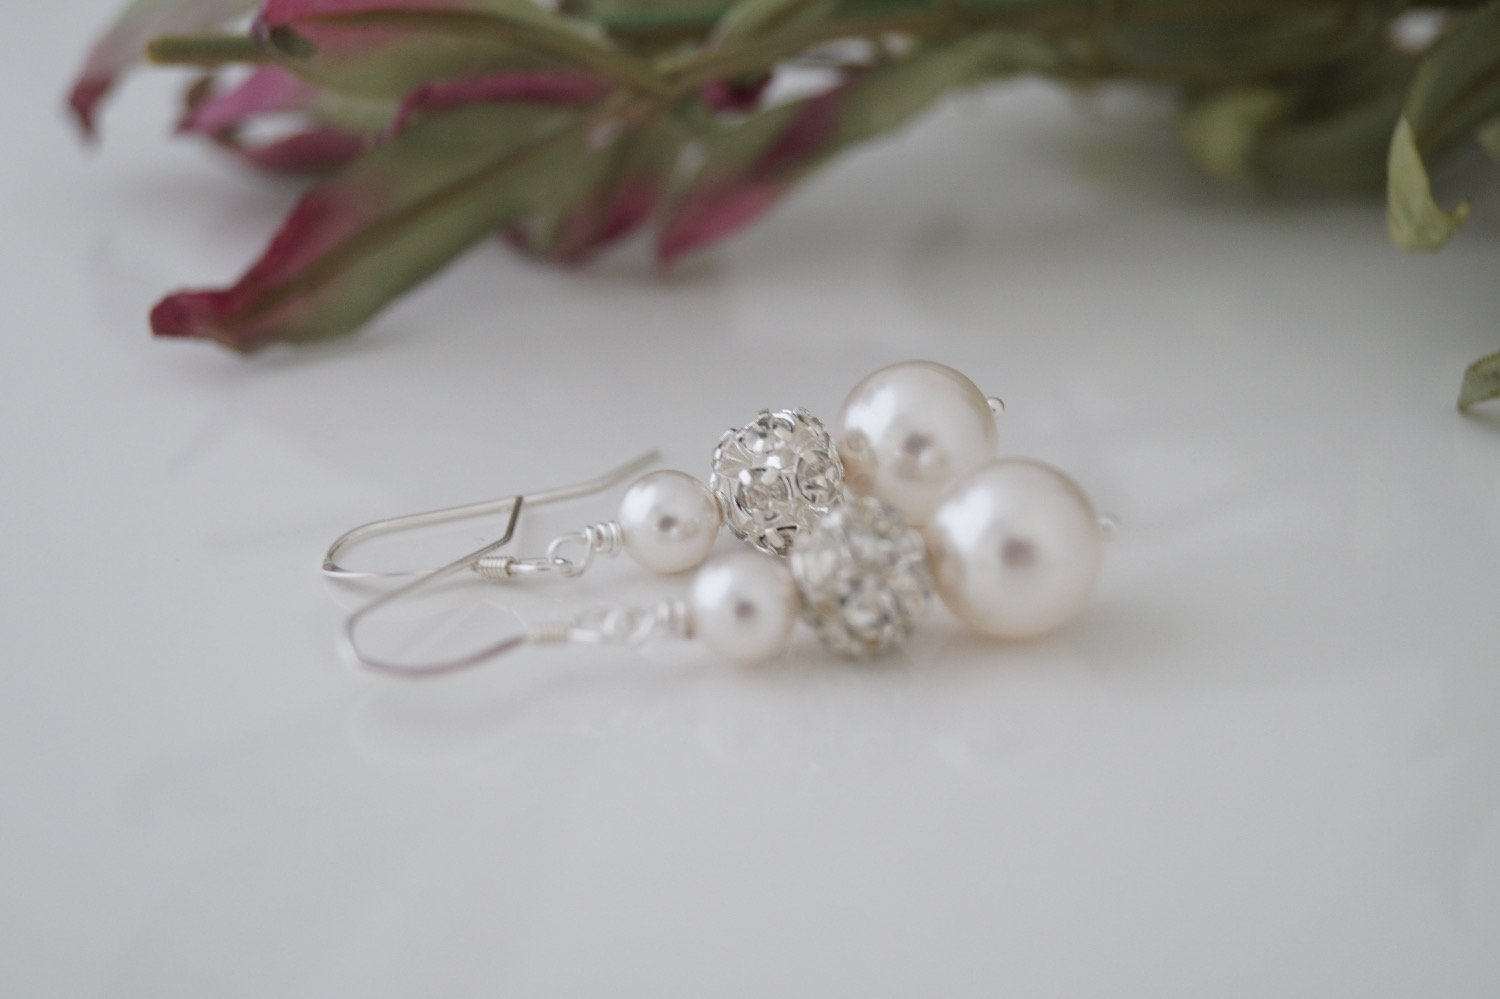 Pearl and Crystal Rhinestone Earrings Wedding Jewelry - Clairesbridal - 4